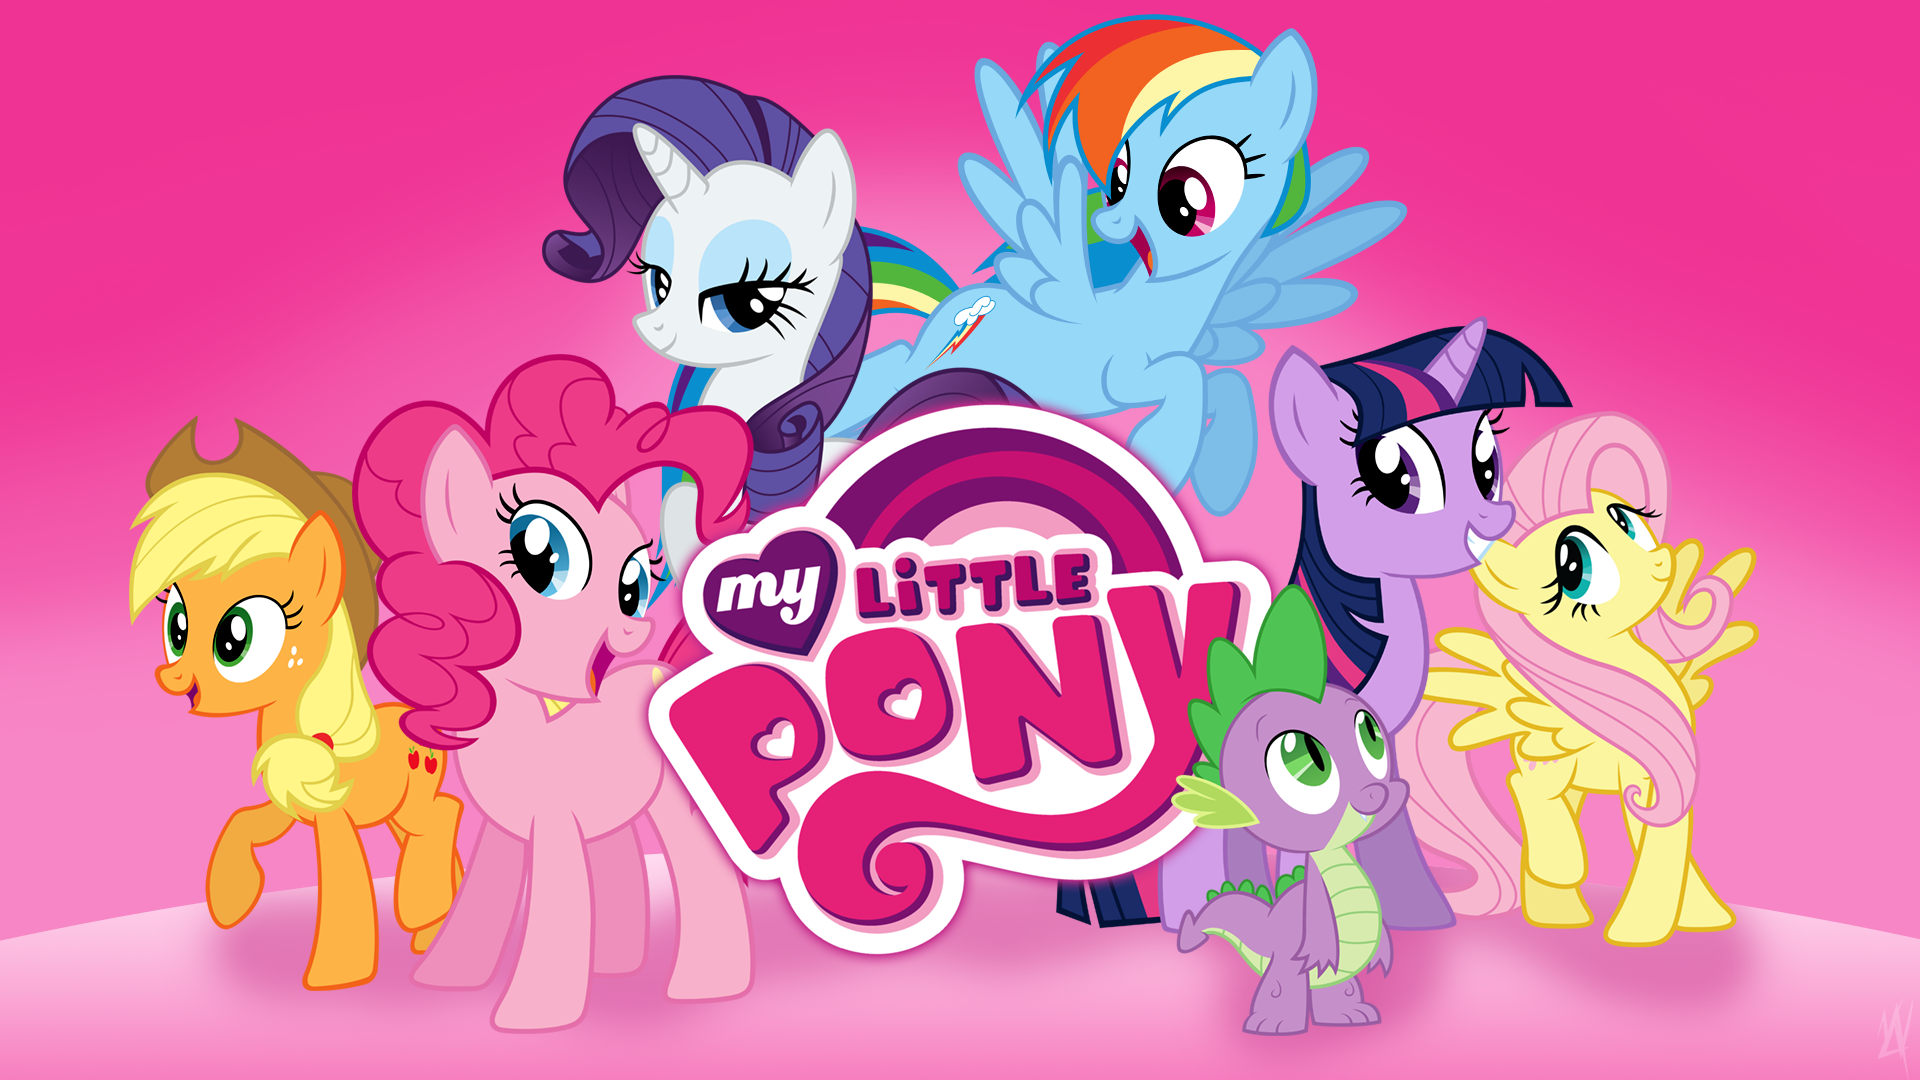 Imagenes] Fondos/Wallpapers de MLP [PC]